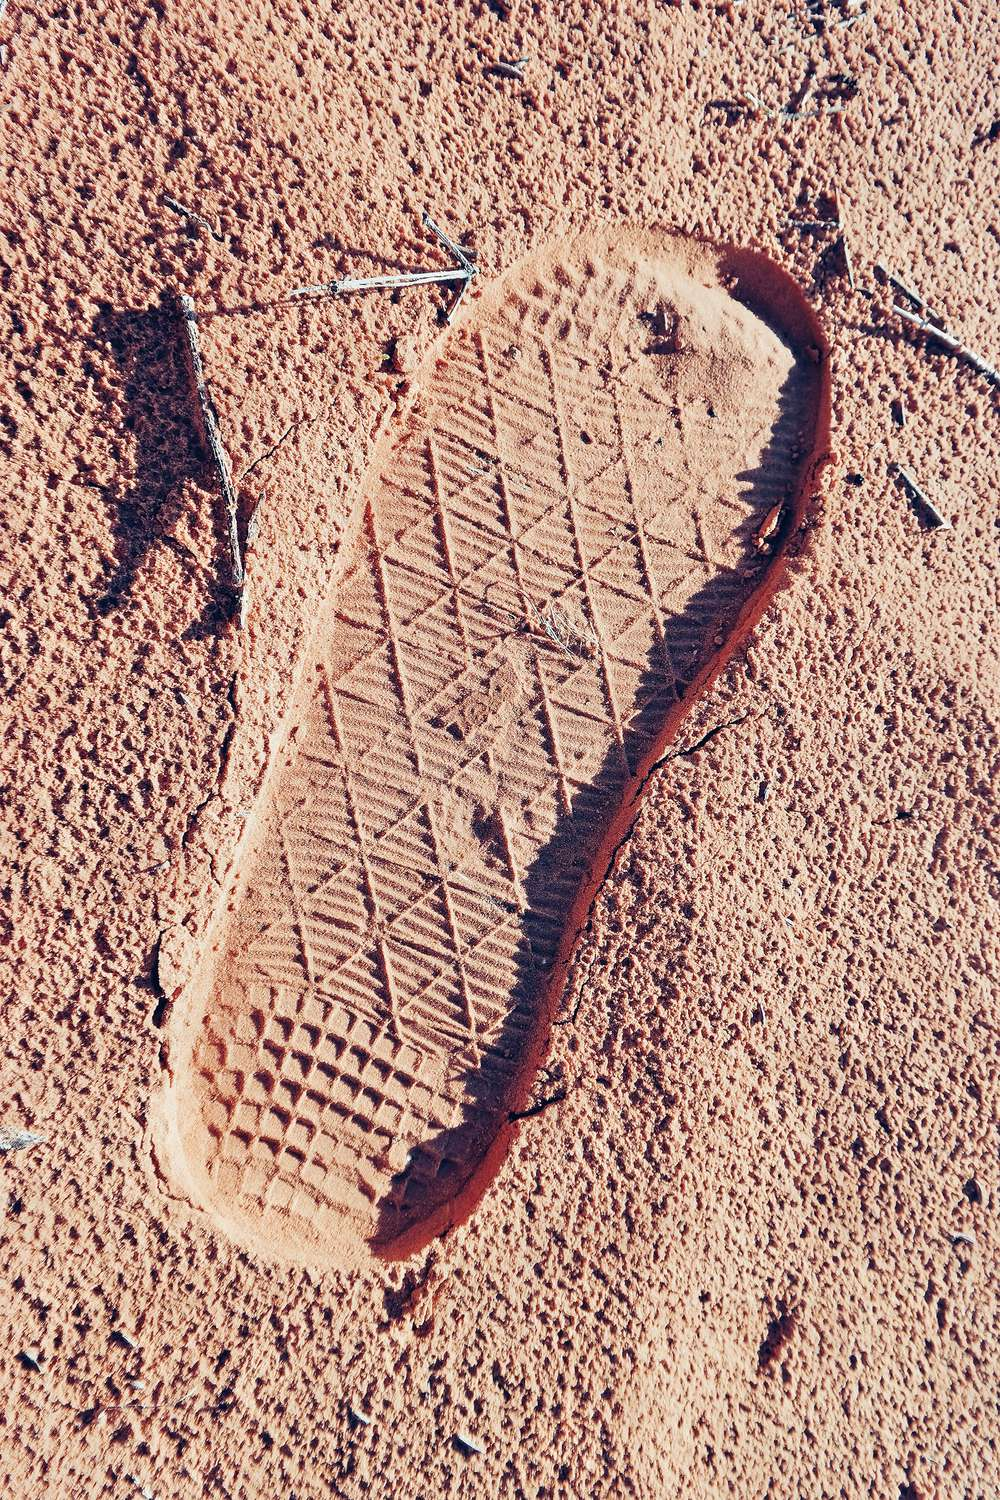 Footprint with Teva logo in desert sand